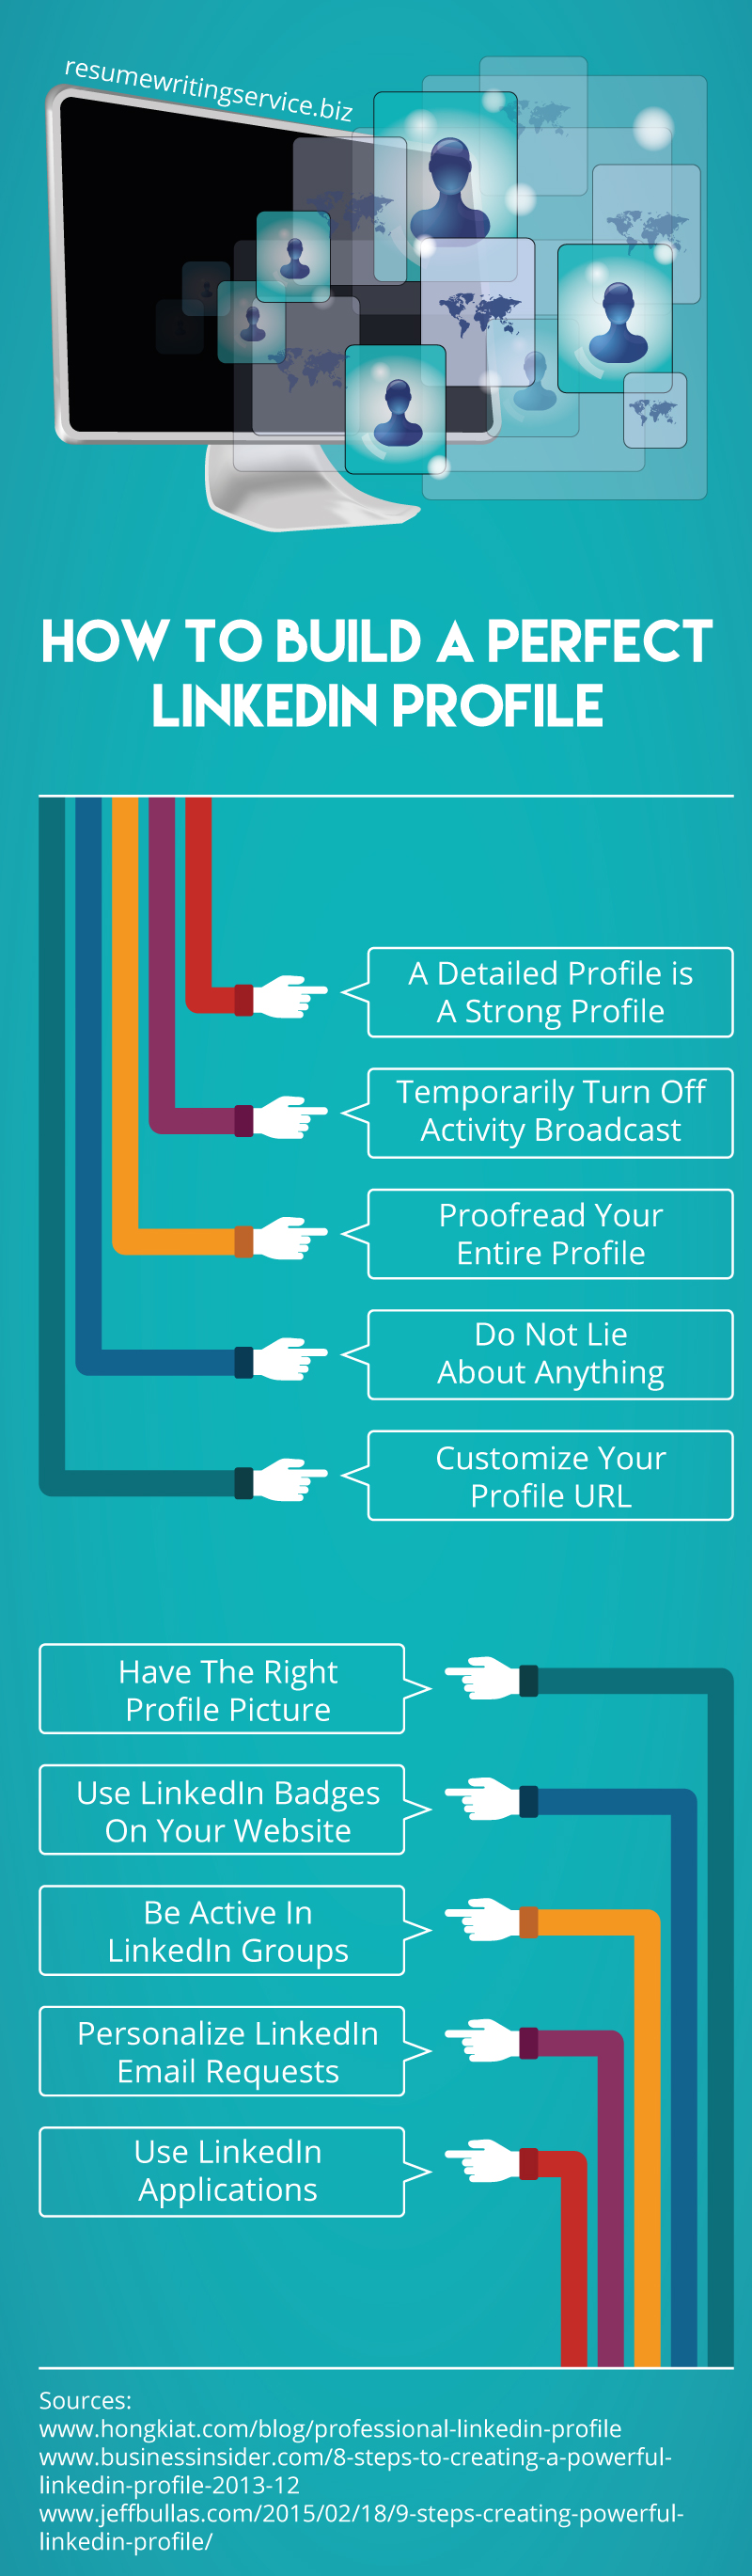 how to build a perfect linkedin profile